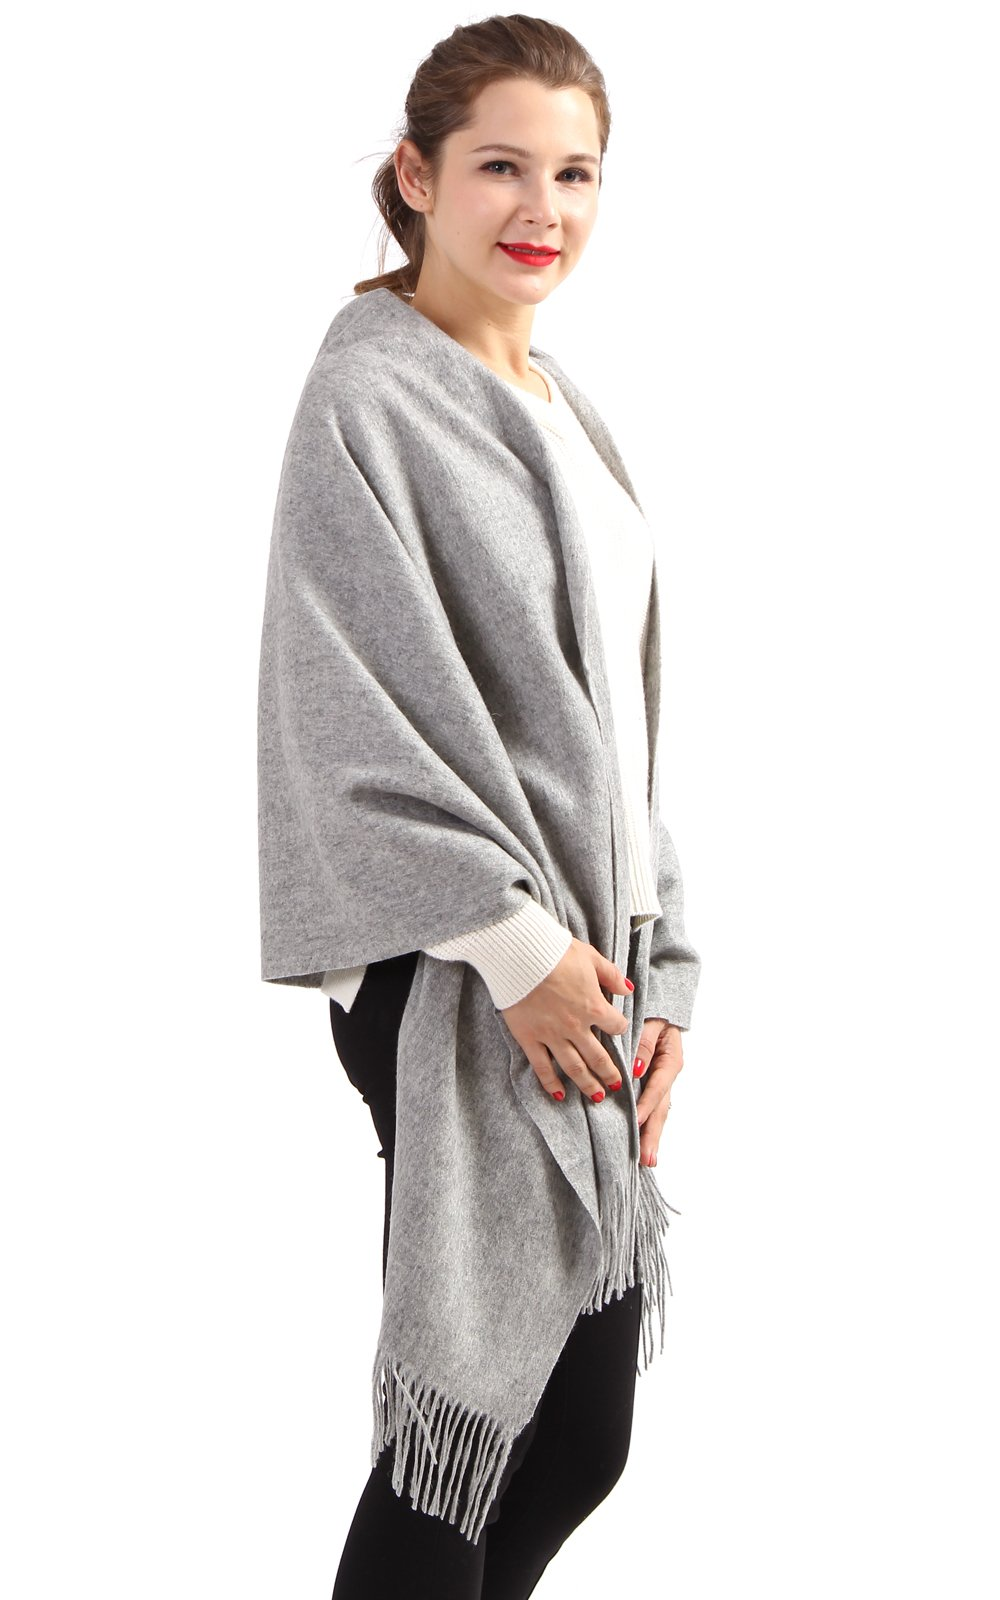 100% Cashmere Wrap Shawl Stole for Women, Guaranteed Quality Pure Cashmere, Super Soft and Warm Extra Large Scarf, Grey by KROWN CASHMERE